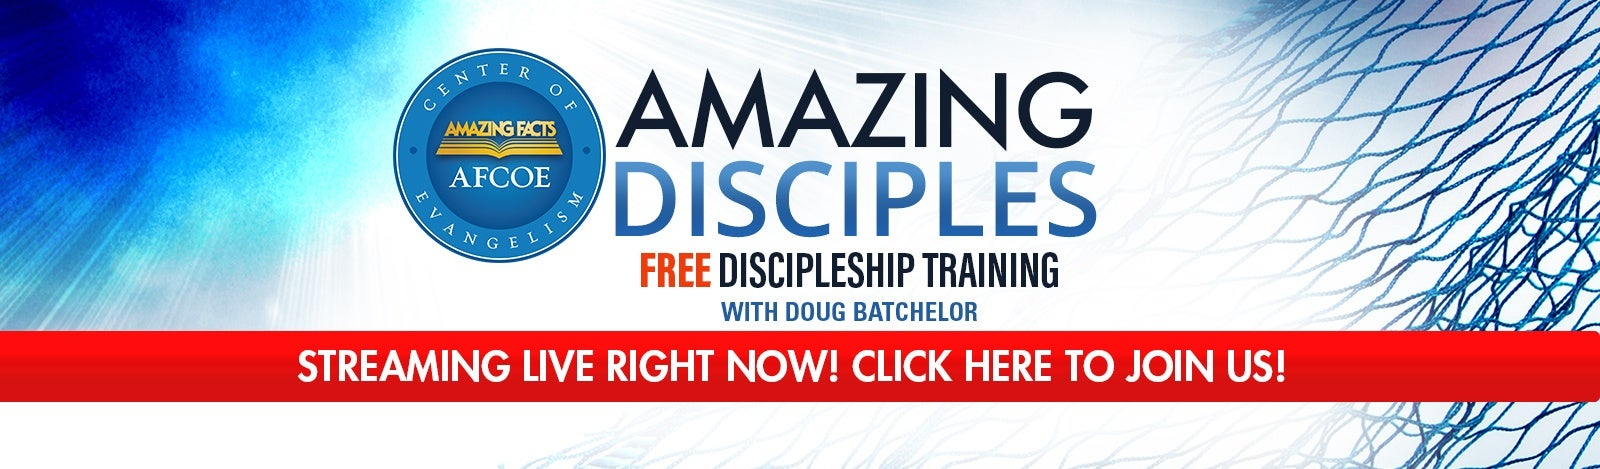 Amazing Disciples Training Is Live Right Now!